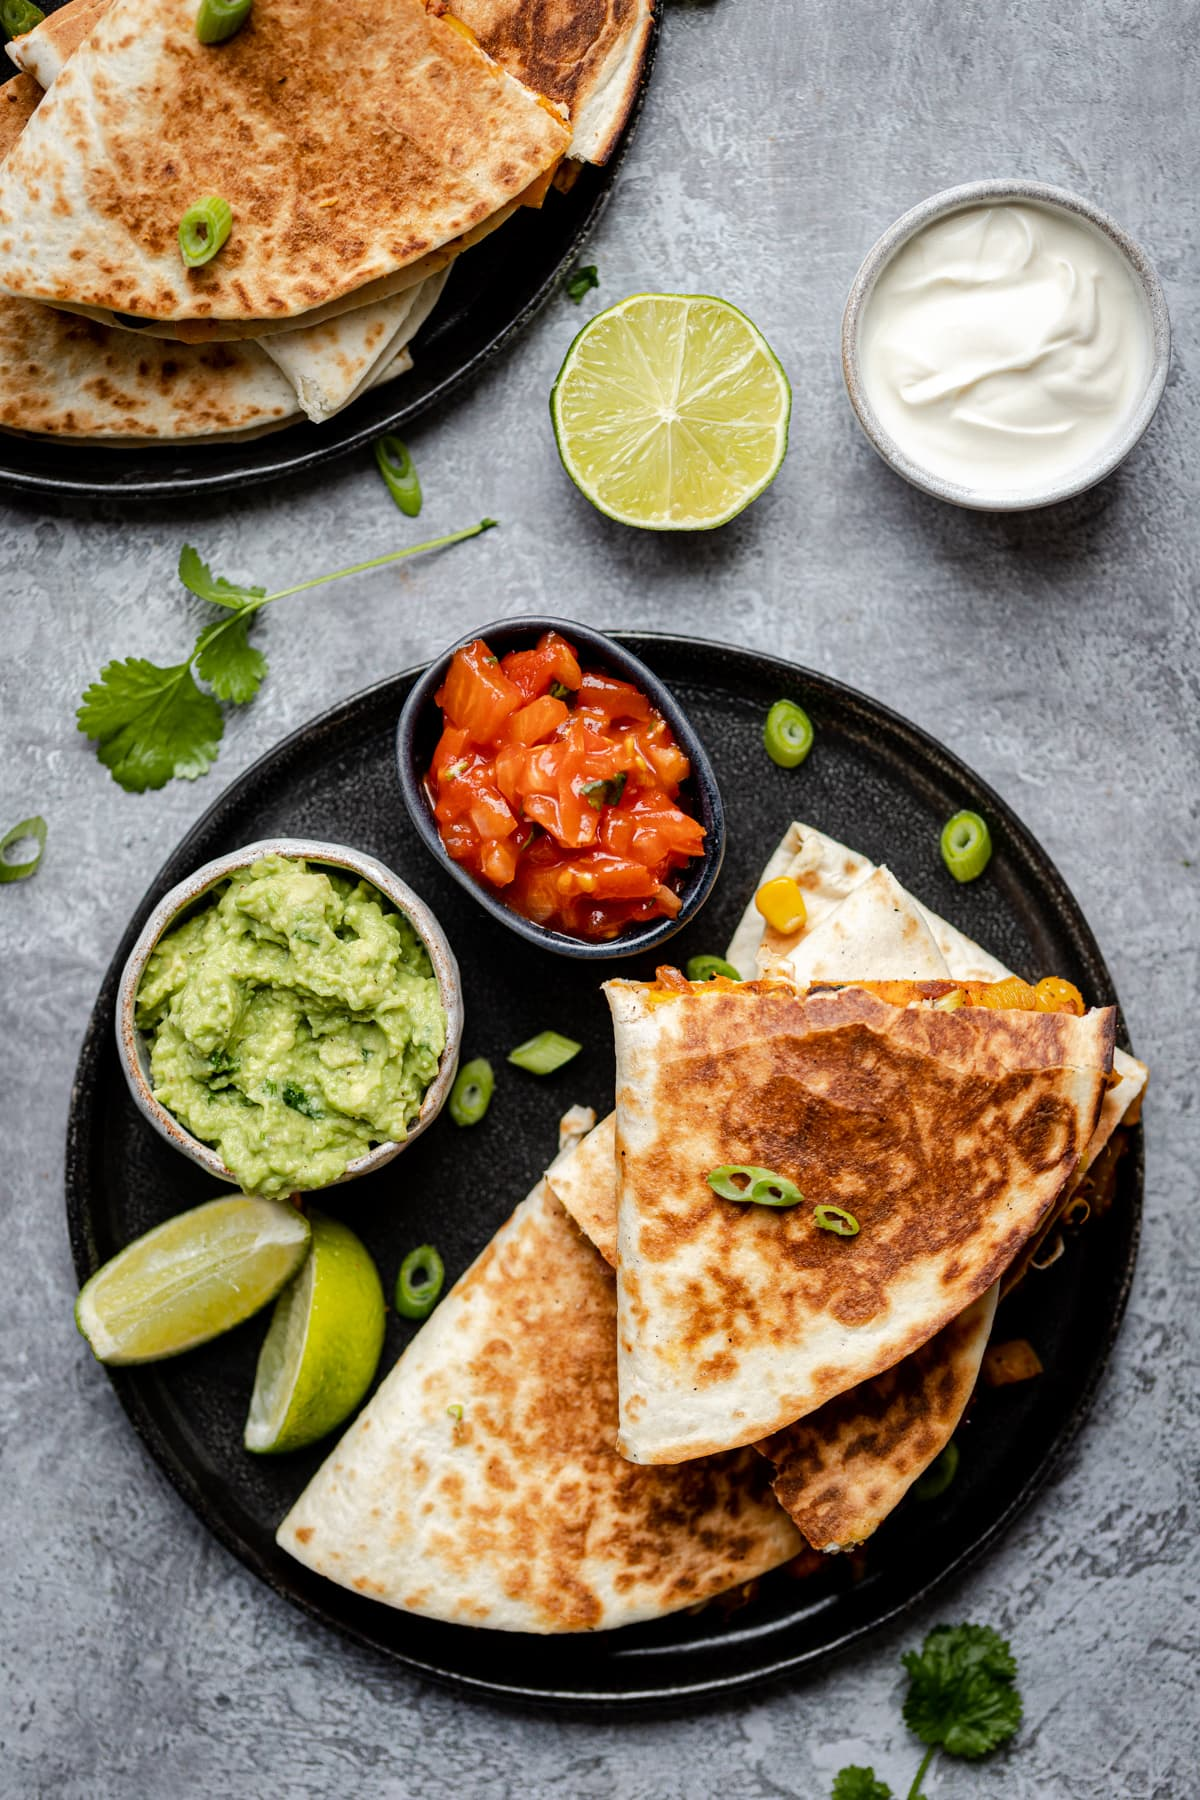 Tortillas with Sweet Potato, black beans, filled with cheese and an avocado dip